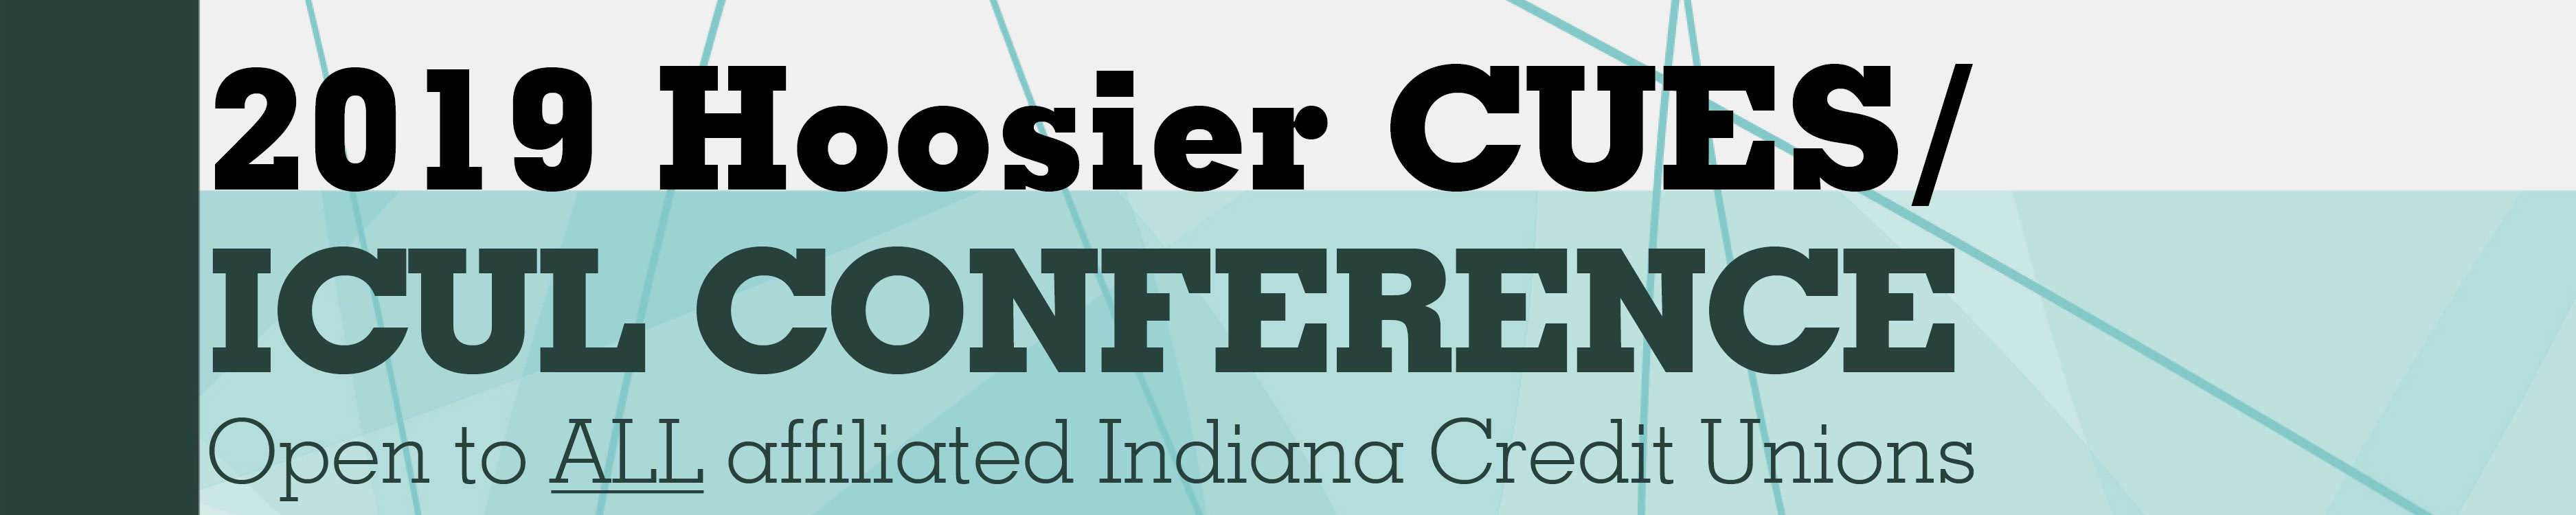 2019 Hoosier CUES/ICUL Conference